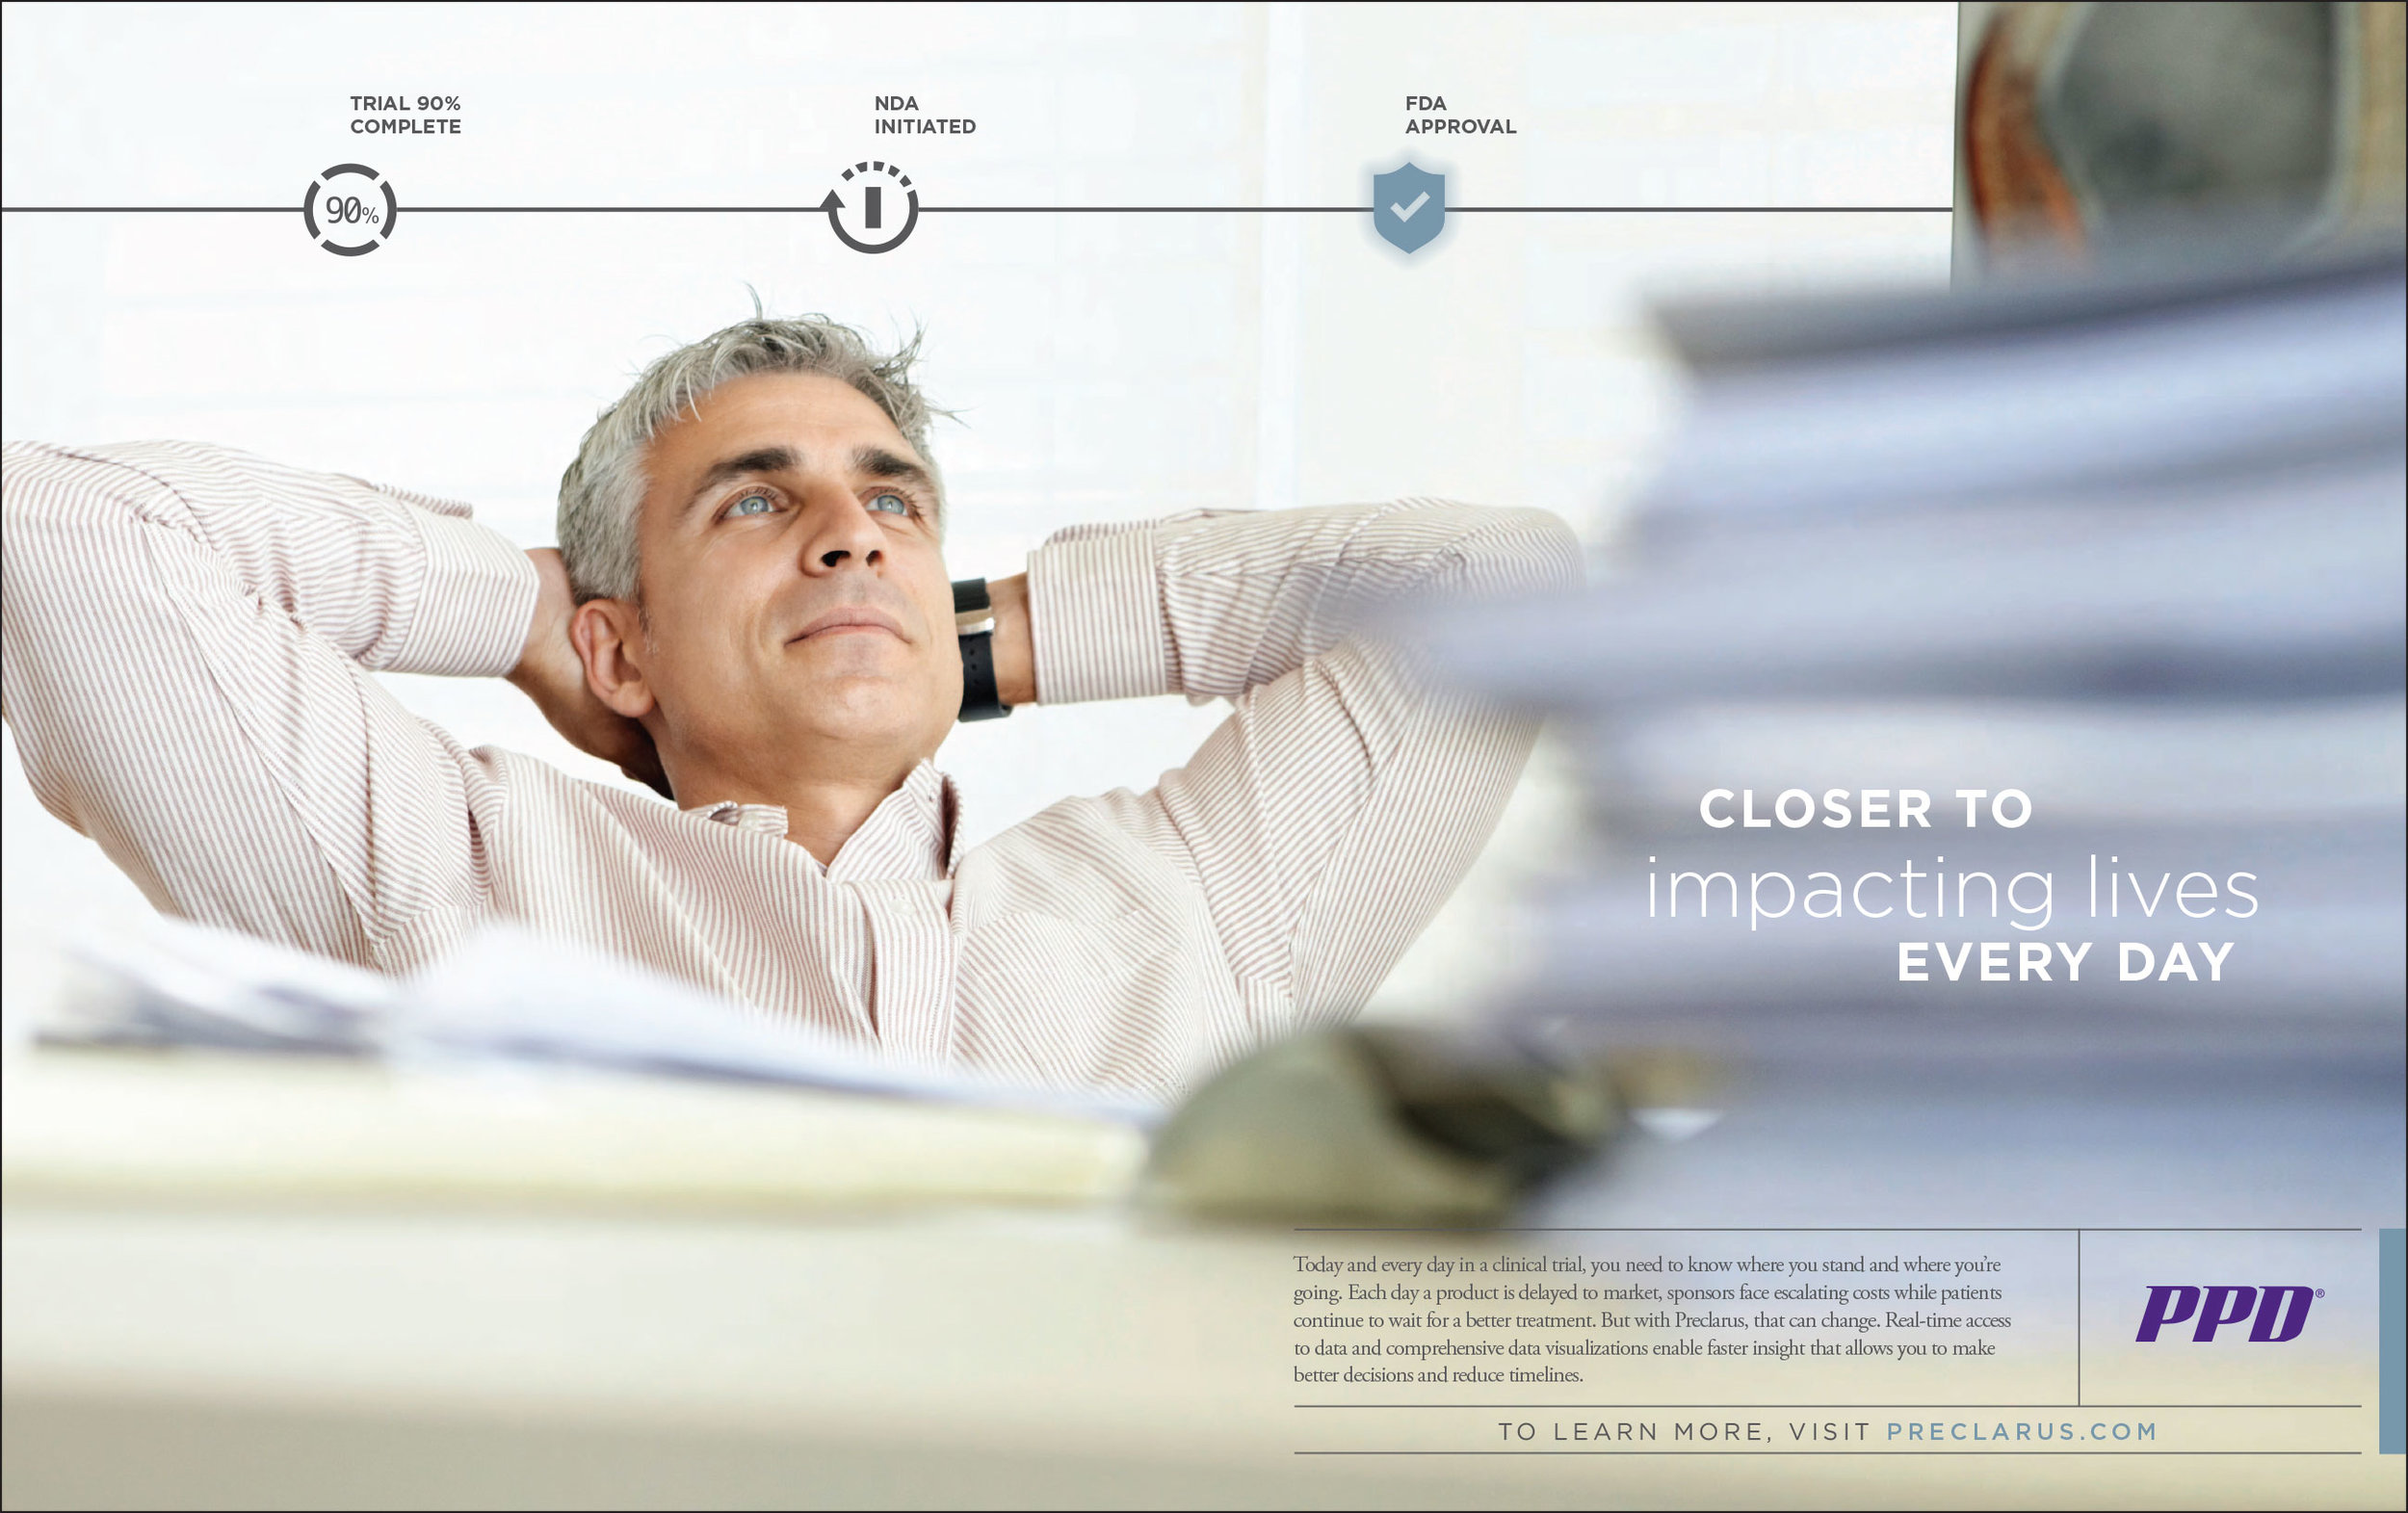 PPD-Closer-Every-Day-3.jpg